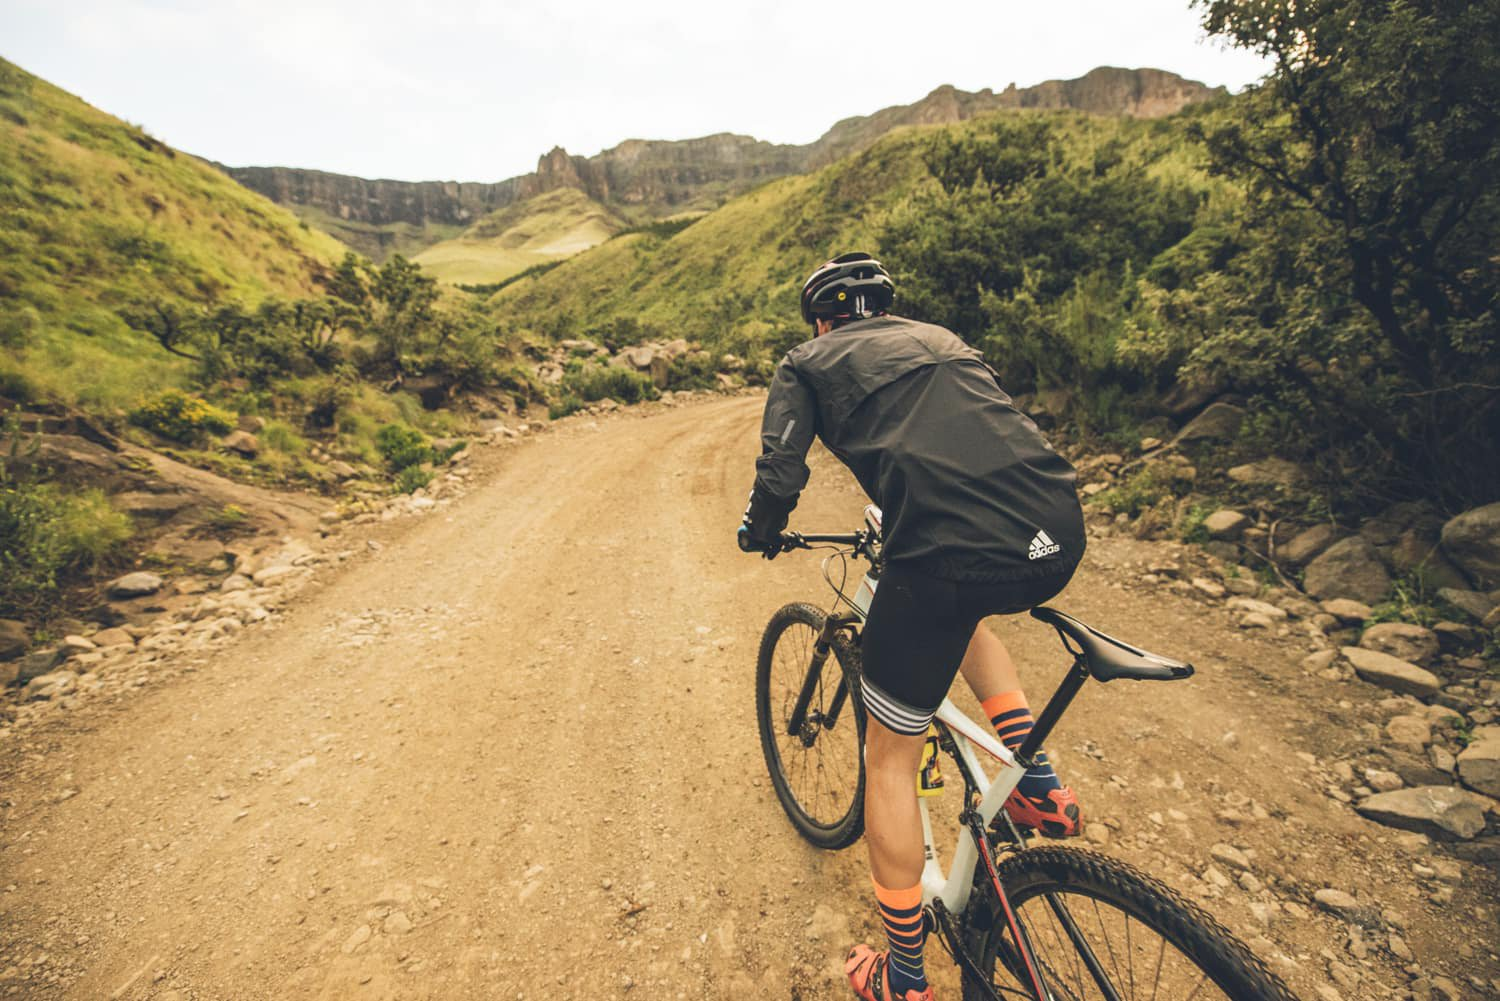 sani-pass-desmond-louw-bicycling-magazine-wowrides-0120